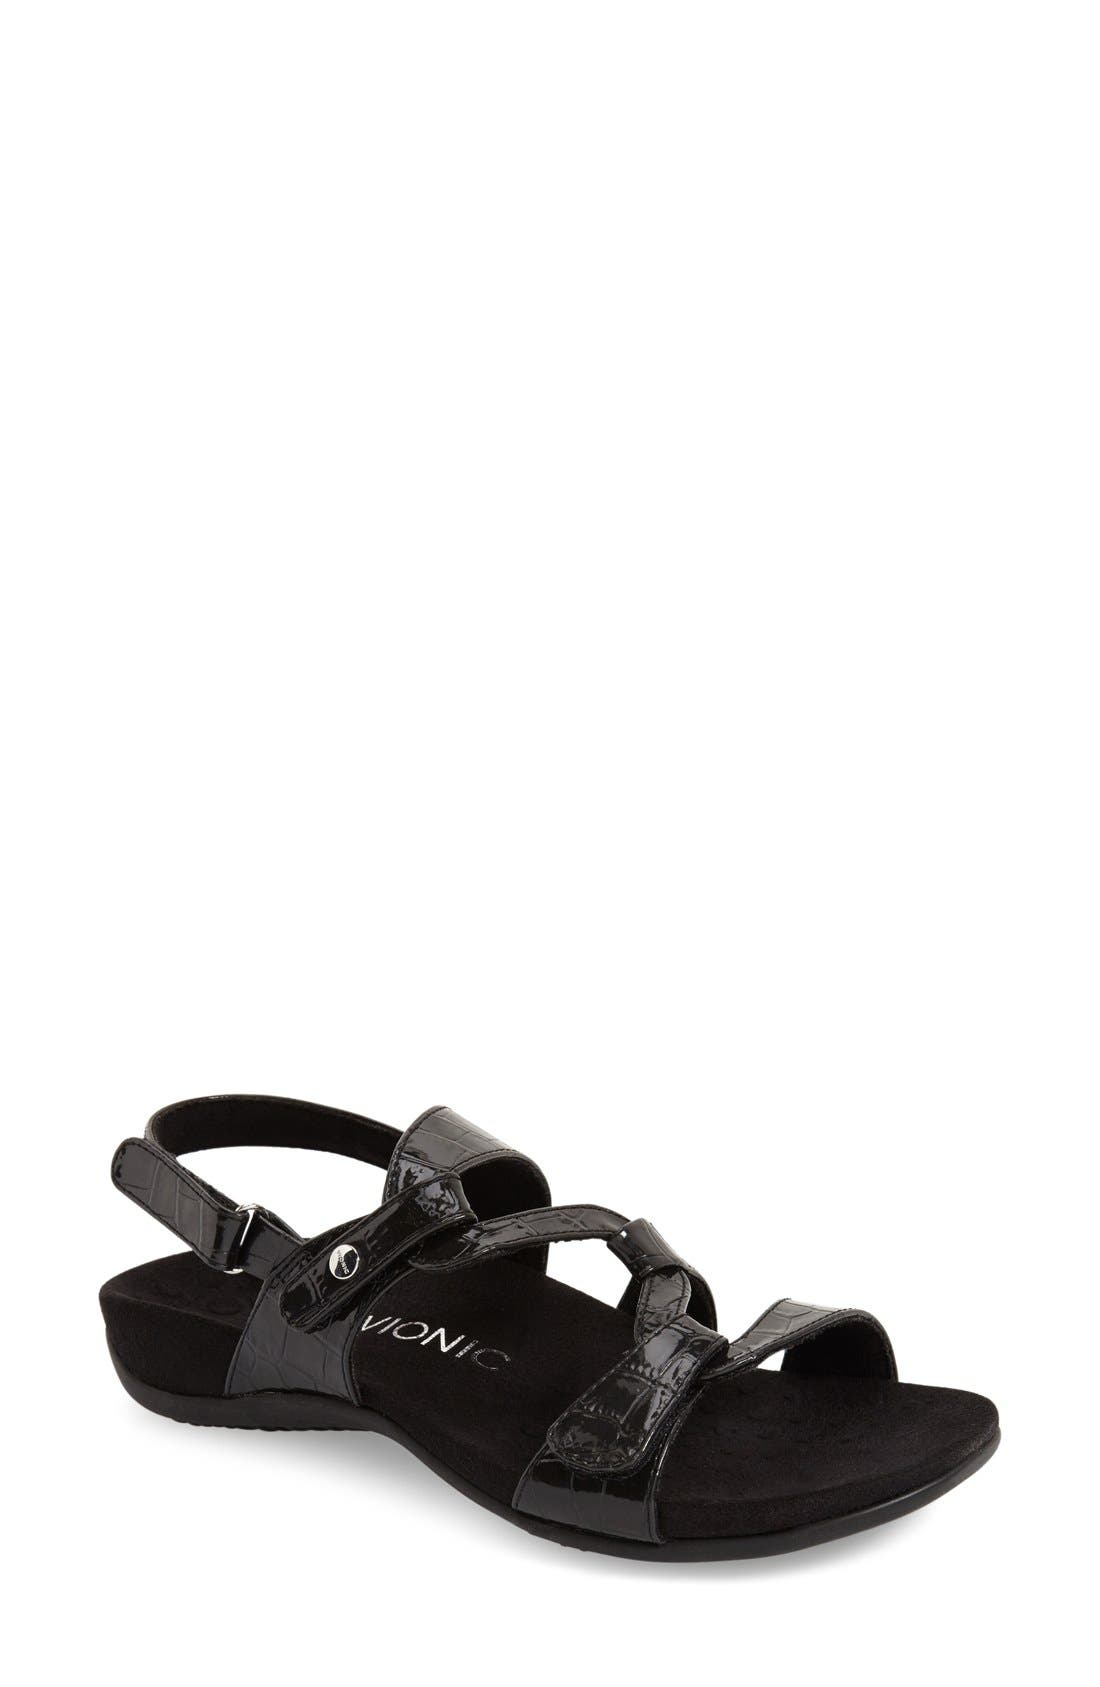 'Paros' Sandal, Main, color, 008